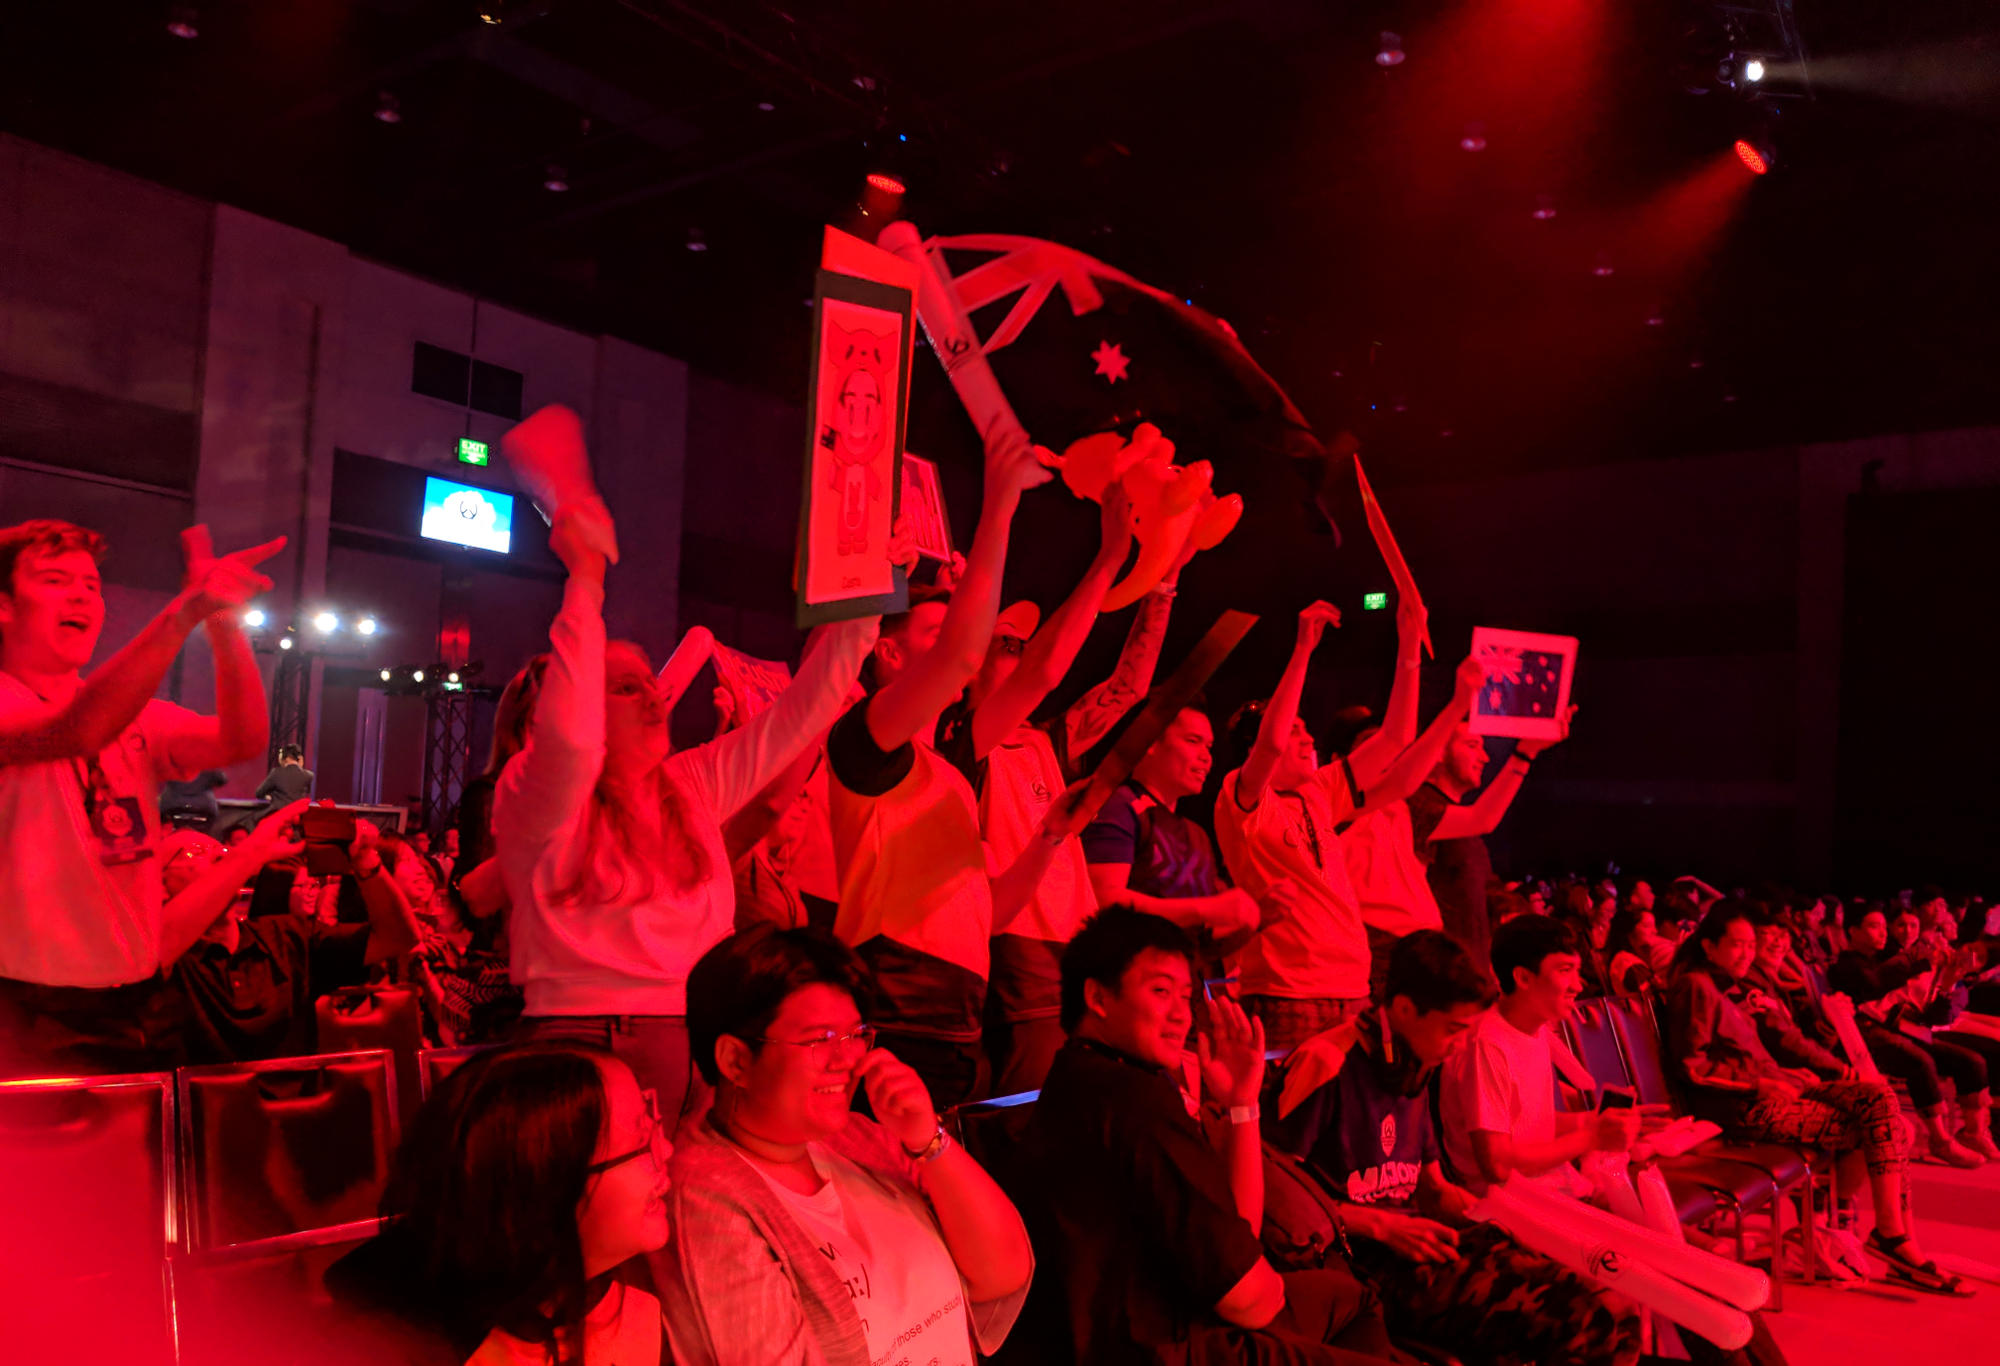 Australian esports fans celebrate a 4-0 victory by their team over Thailand at the 2018 Overwatch World Cup.